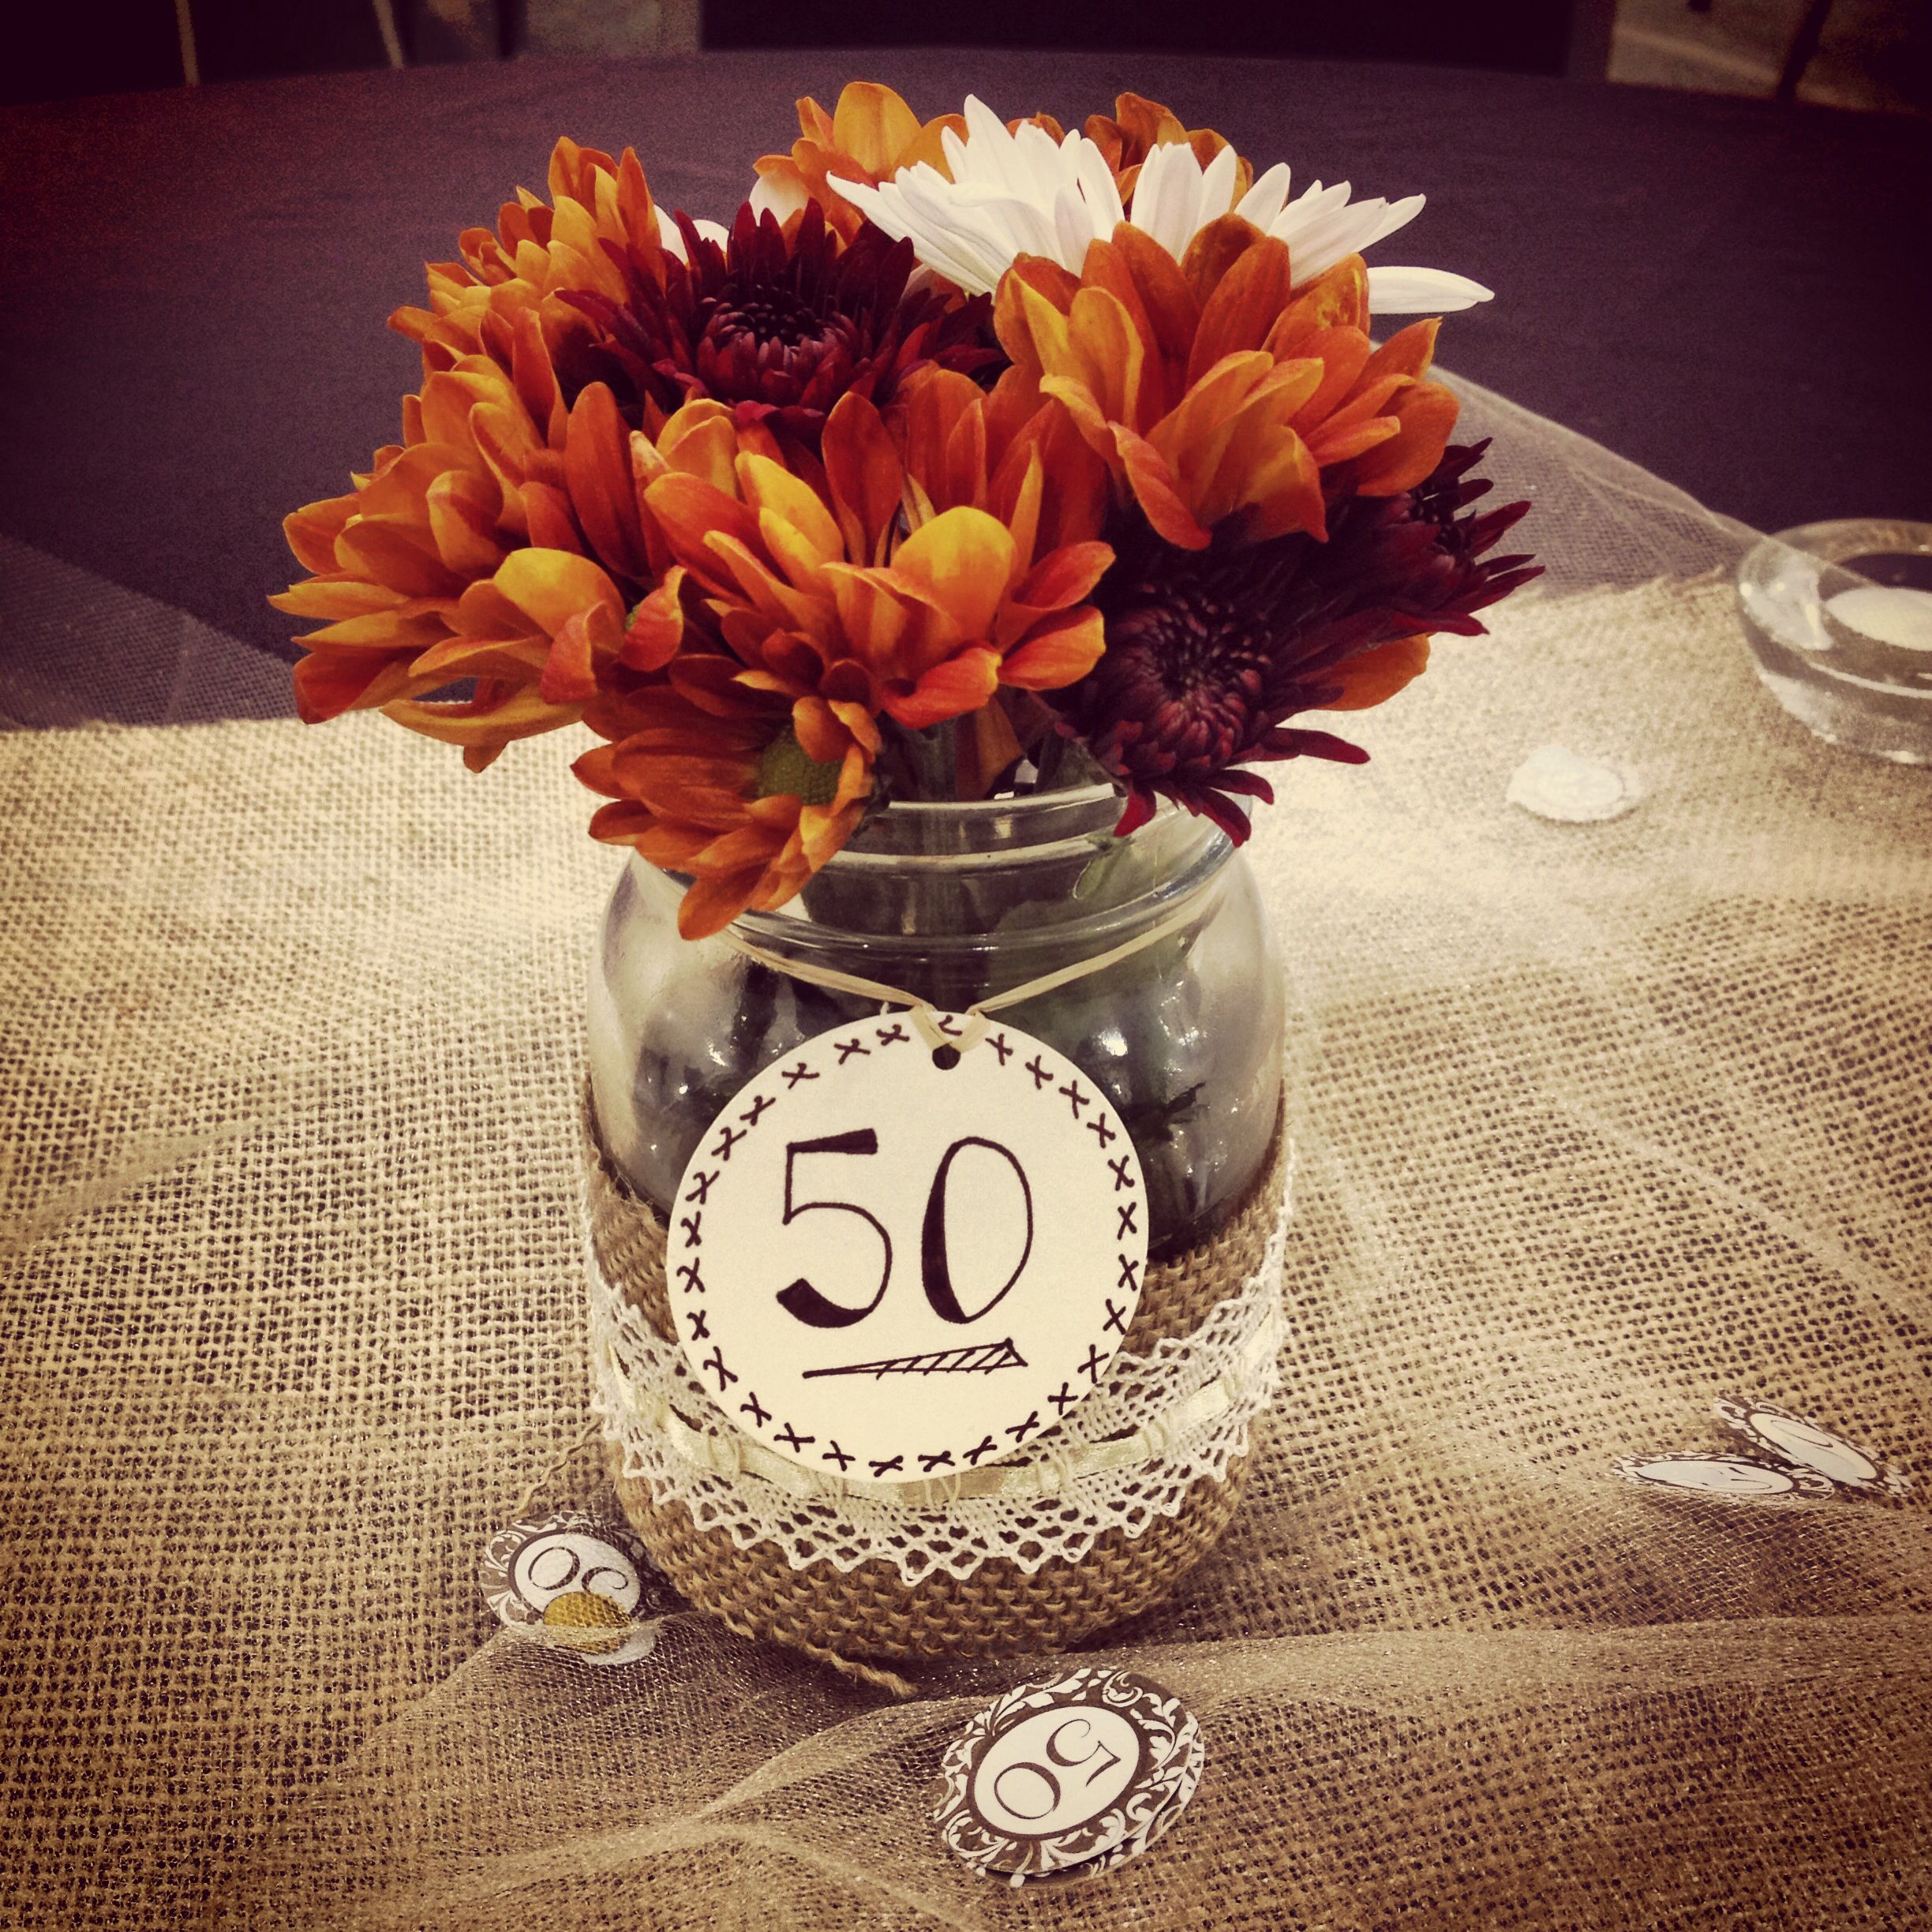 50th wedding anniversary party centerpiece  Projects I will actually DO in 2019  50th